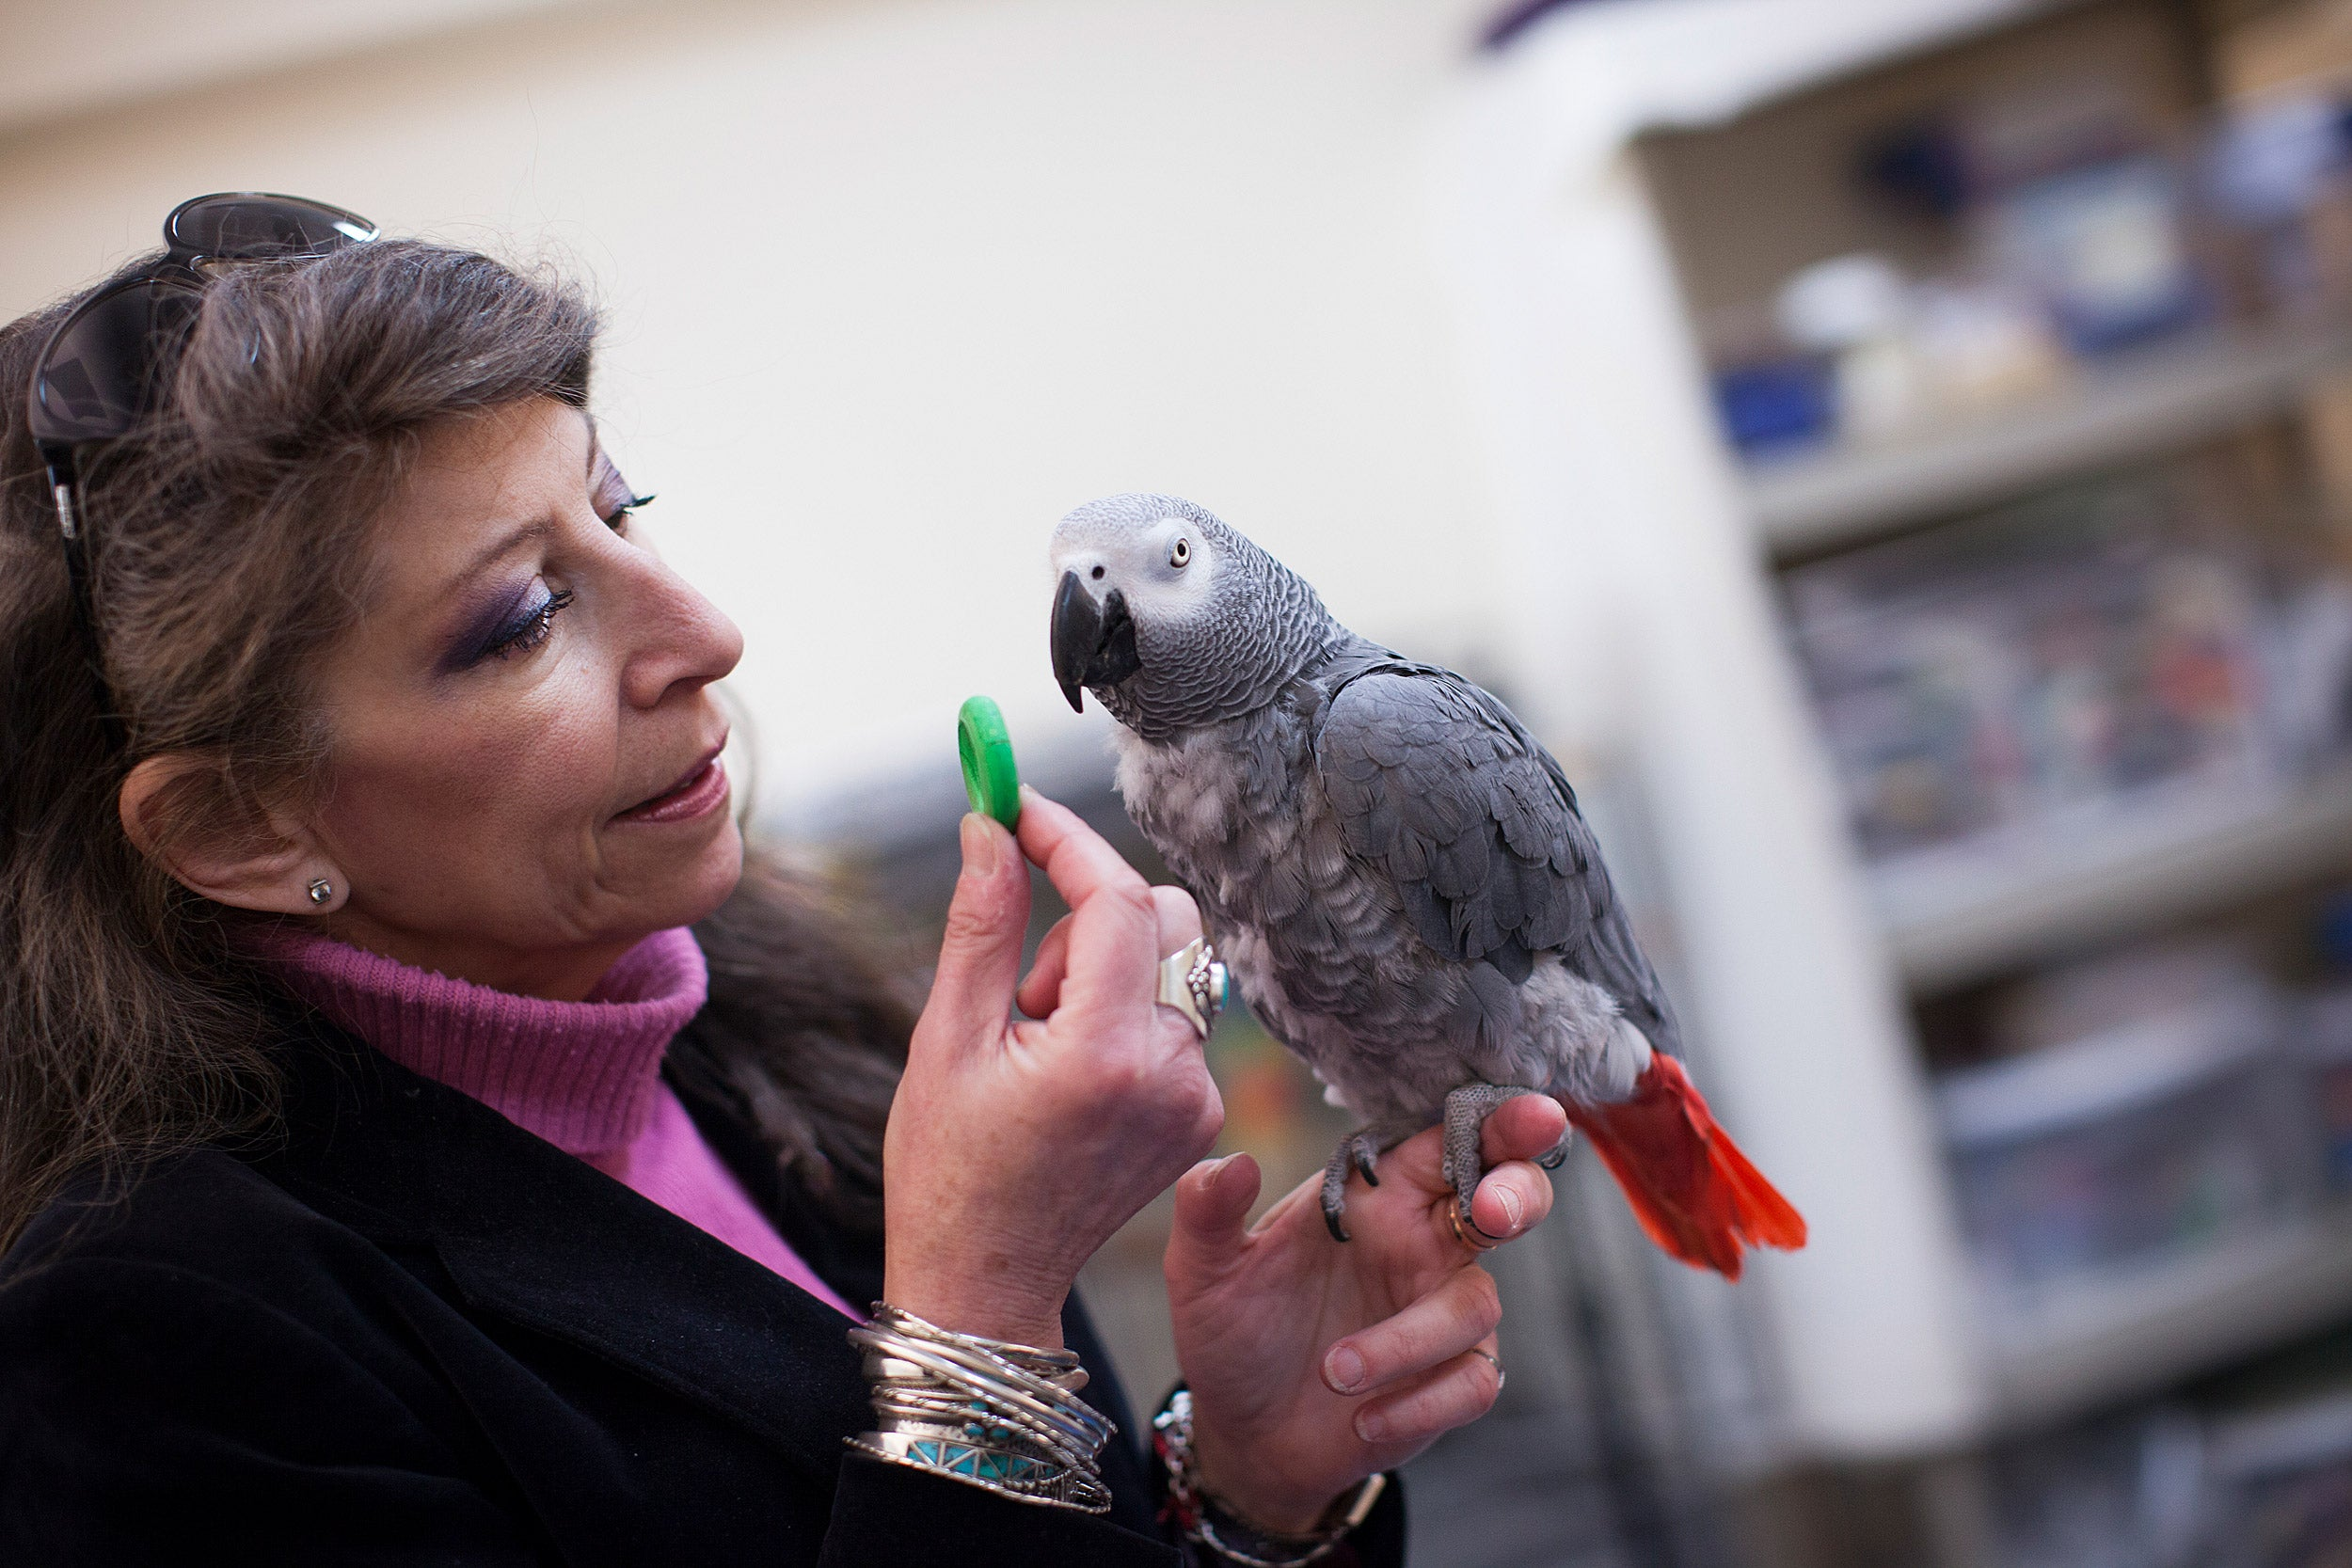 Scientist Irene Pepperberg with African grey parrot, Griffin.